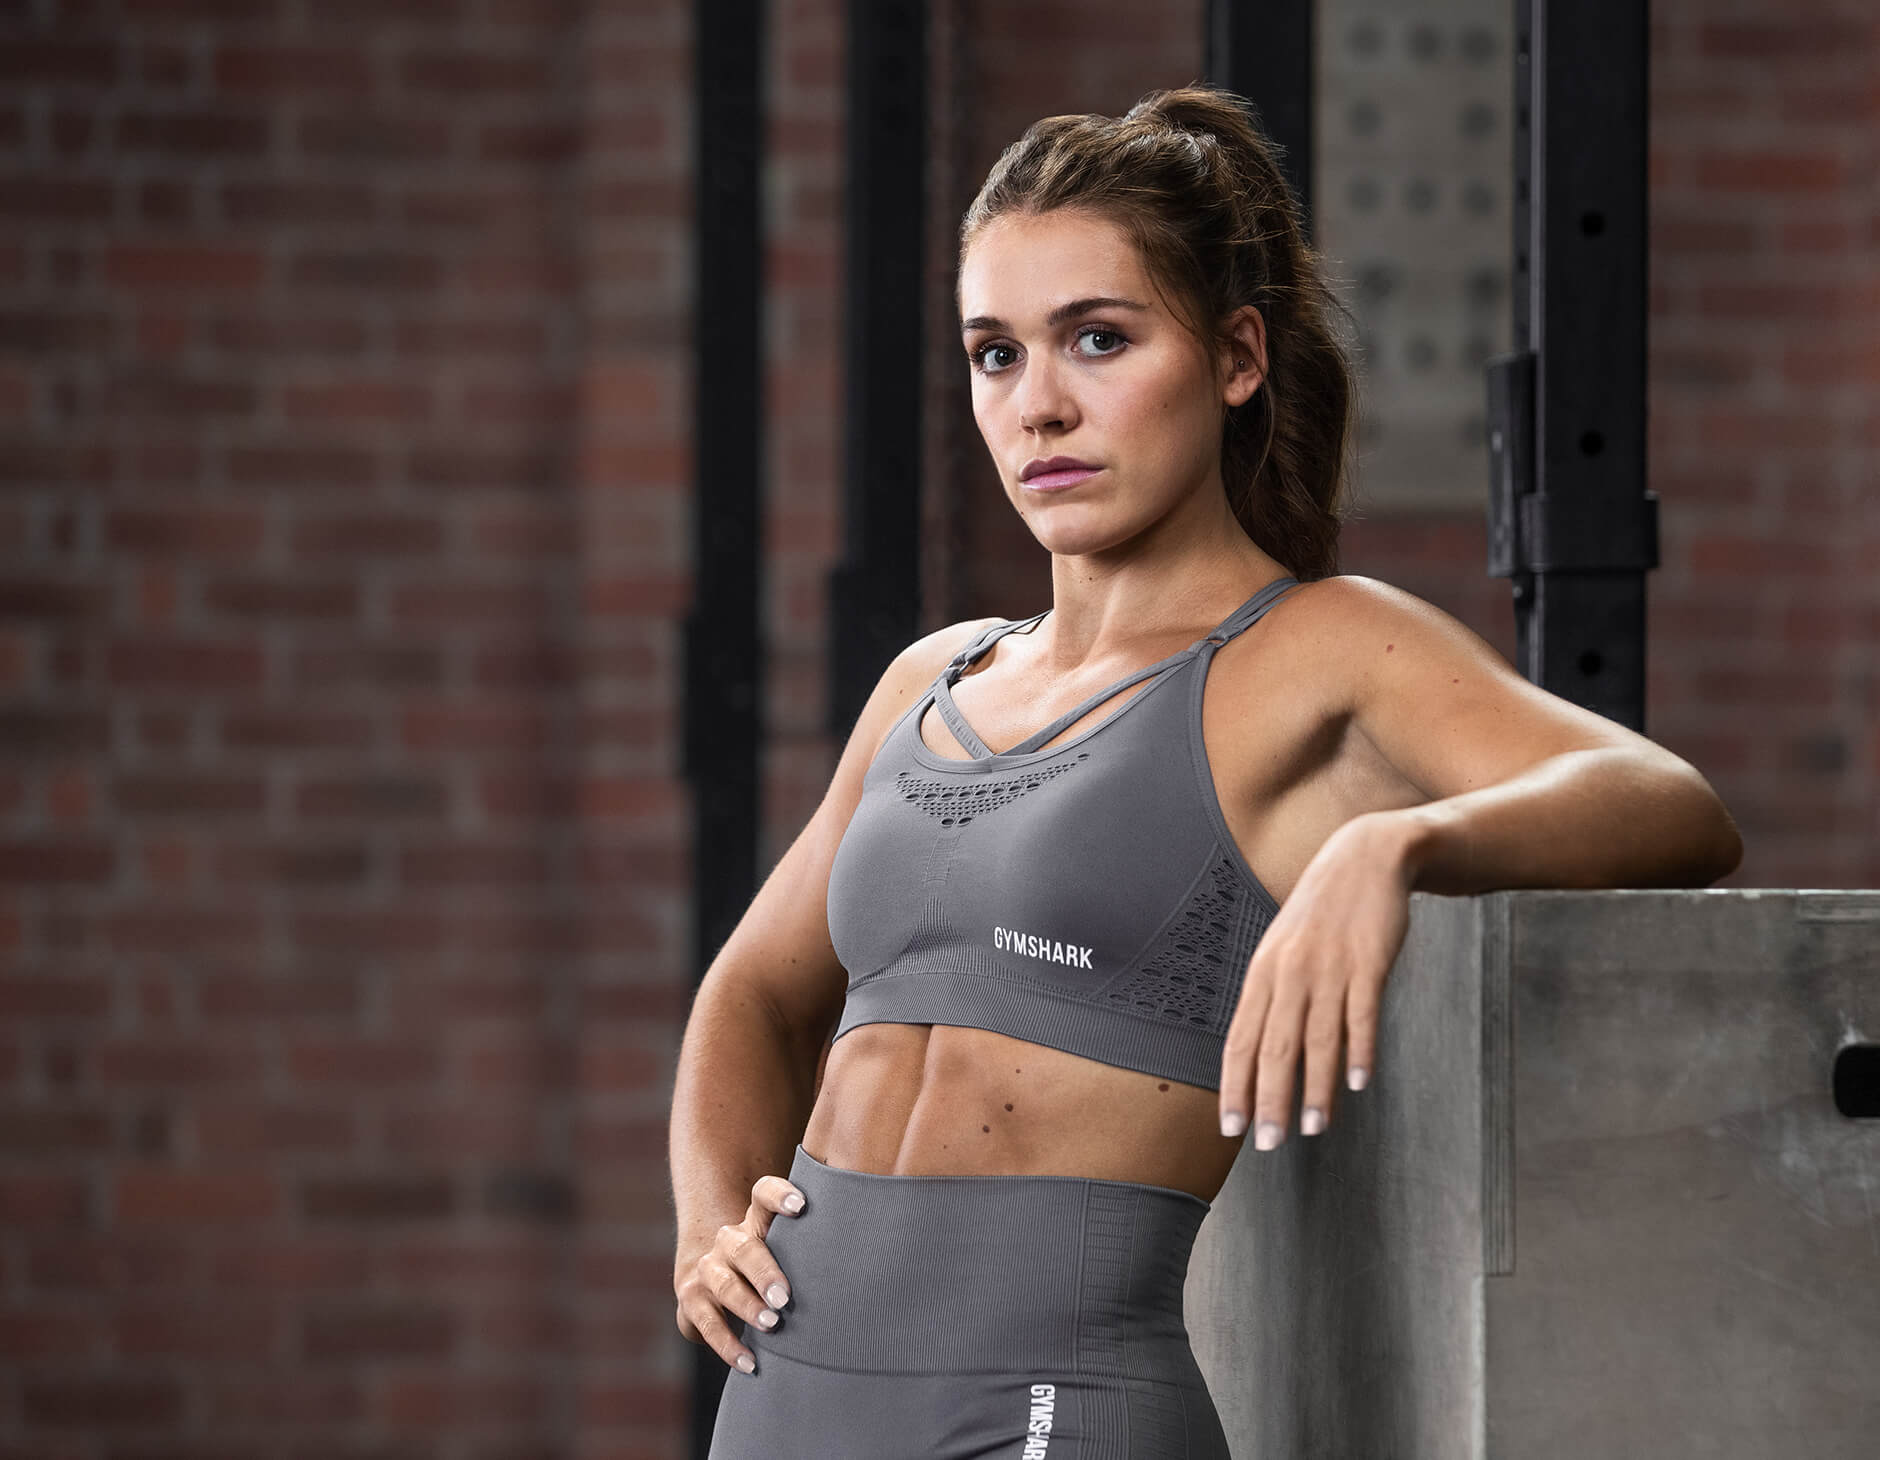 Gymshark athlete modelling Energy Seamless Collection in Grey leaning on a metal box in front of a red brick wall with black pipes.